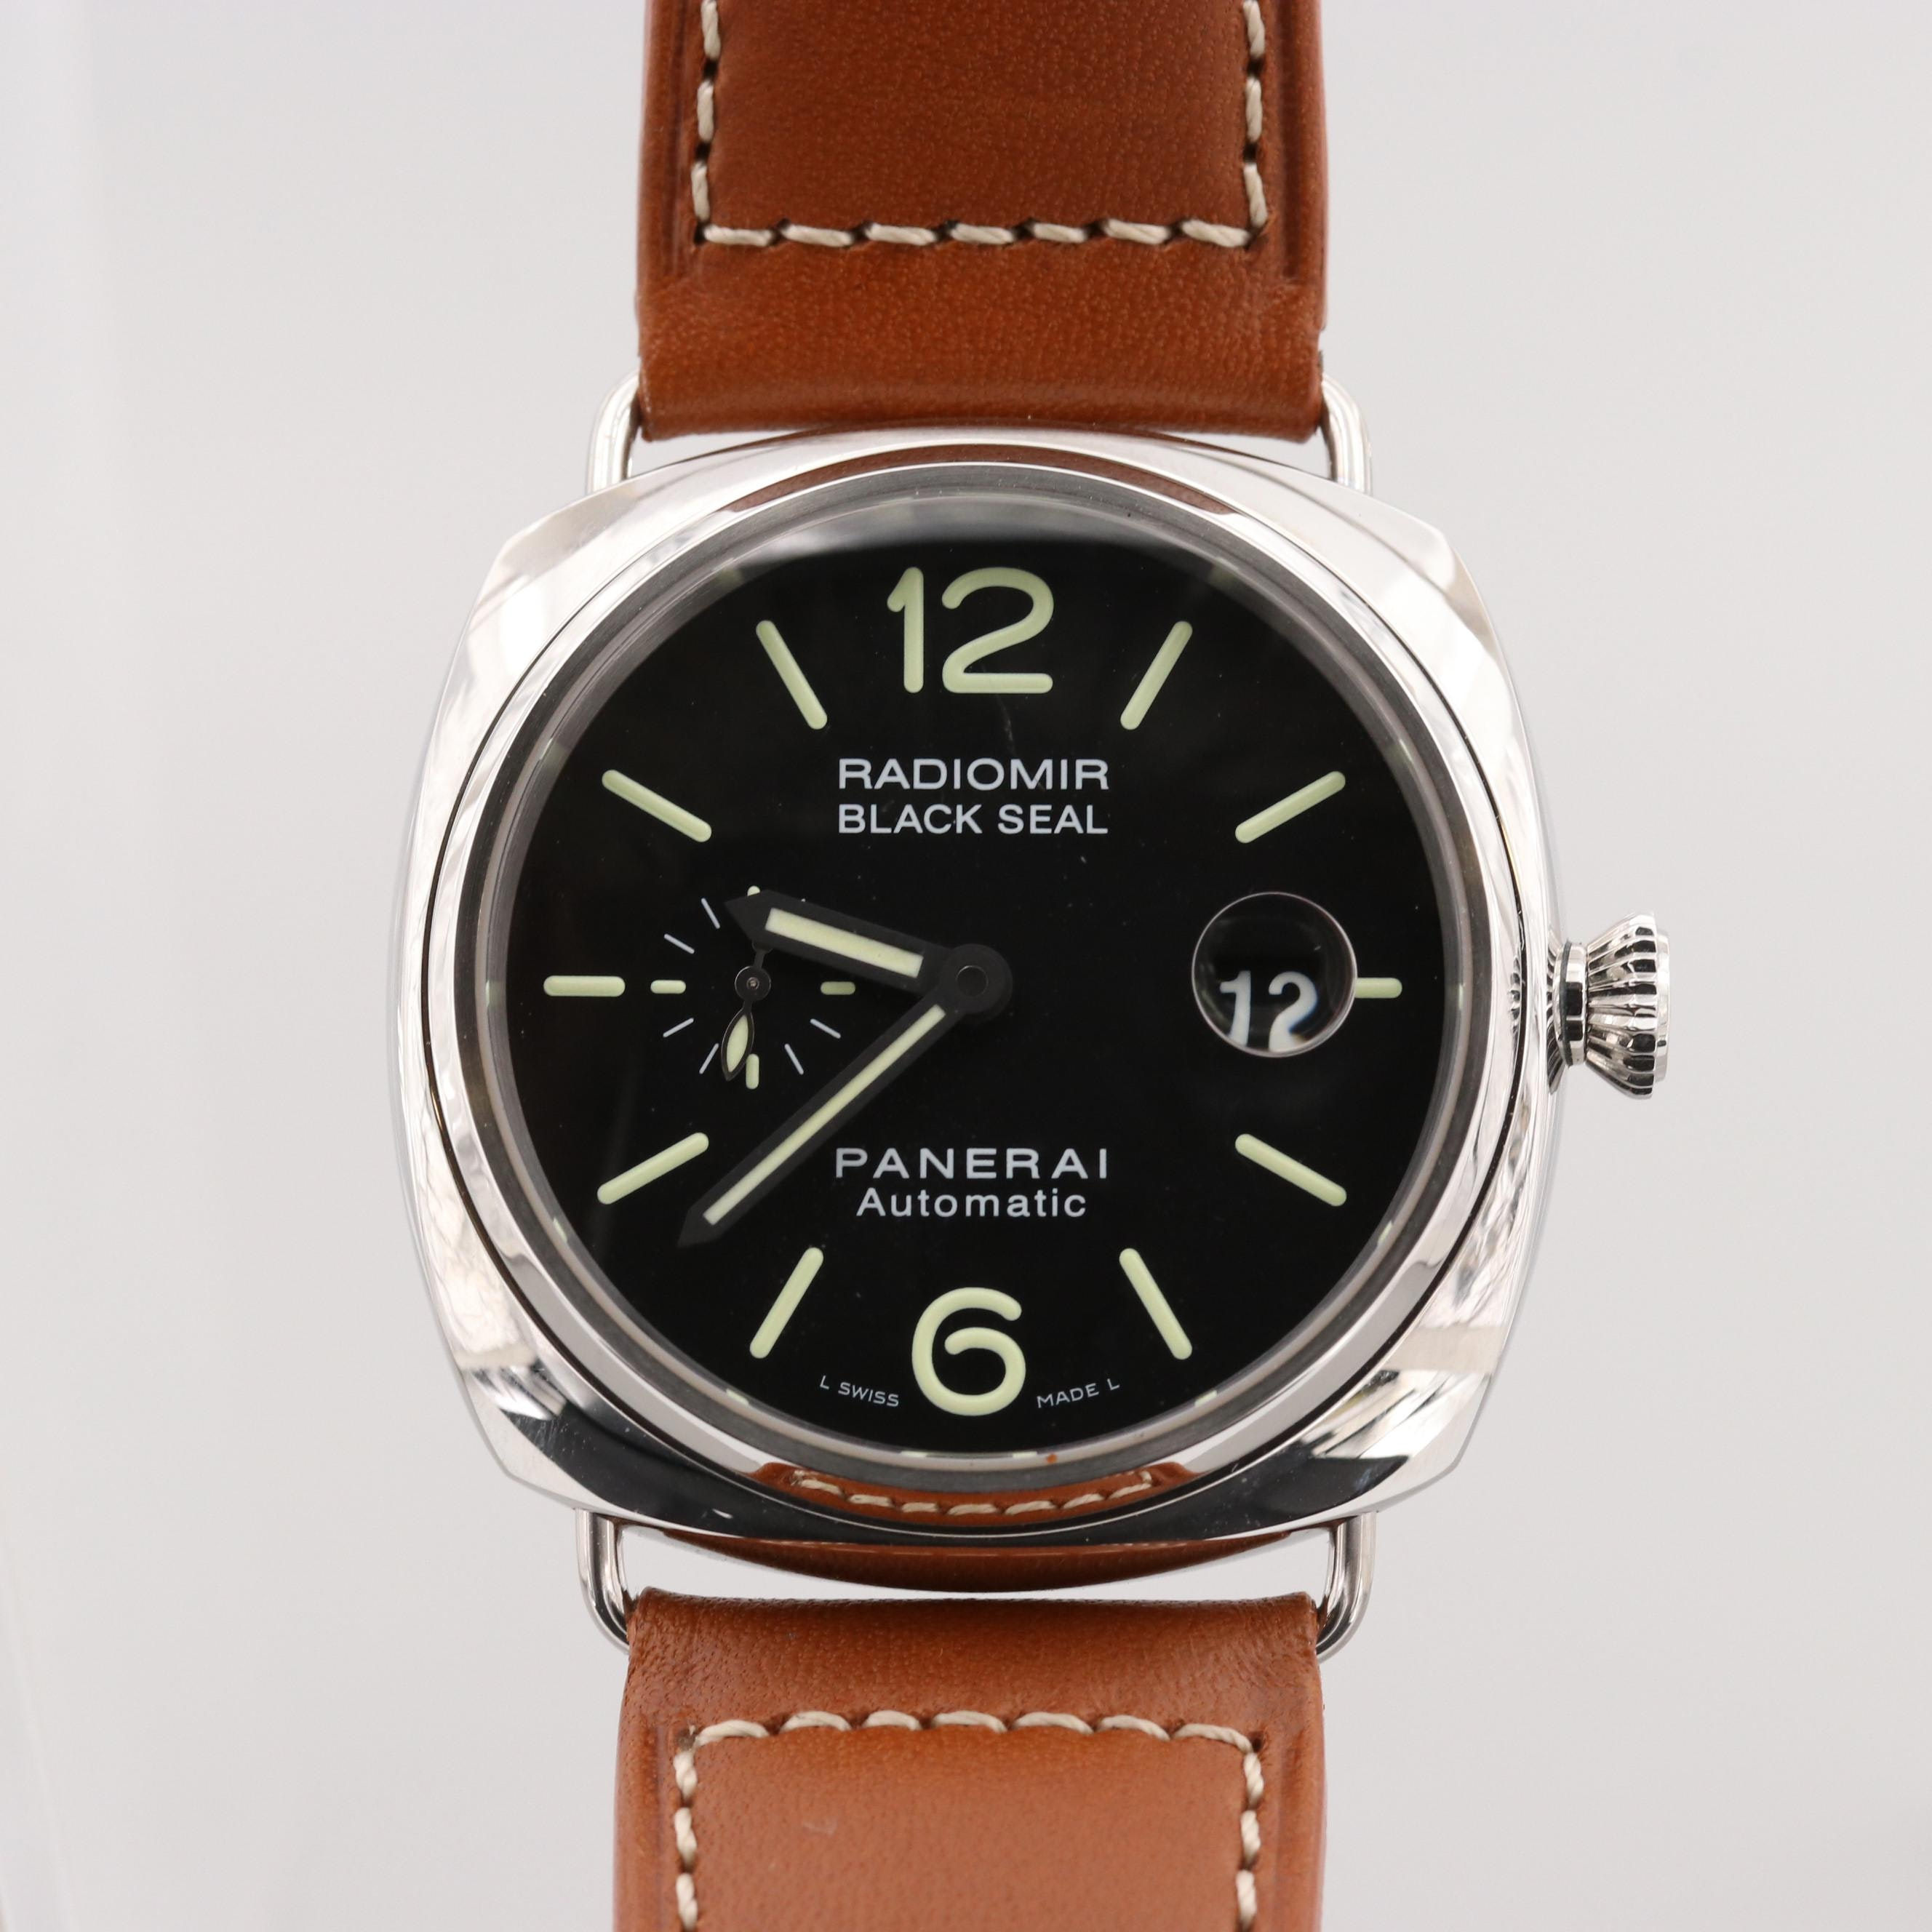 Panerai Radiomir Black Seal Stainless Steel Automatic Wristwatch